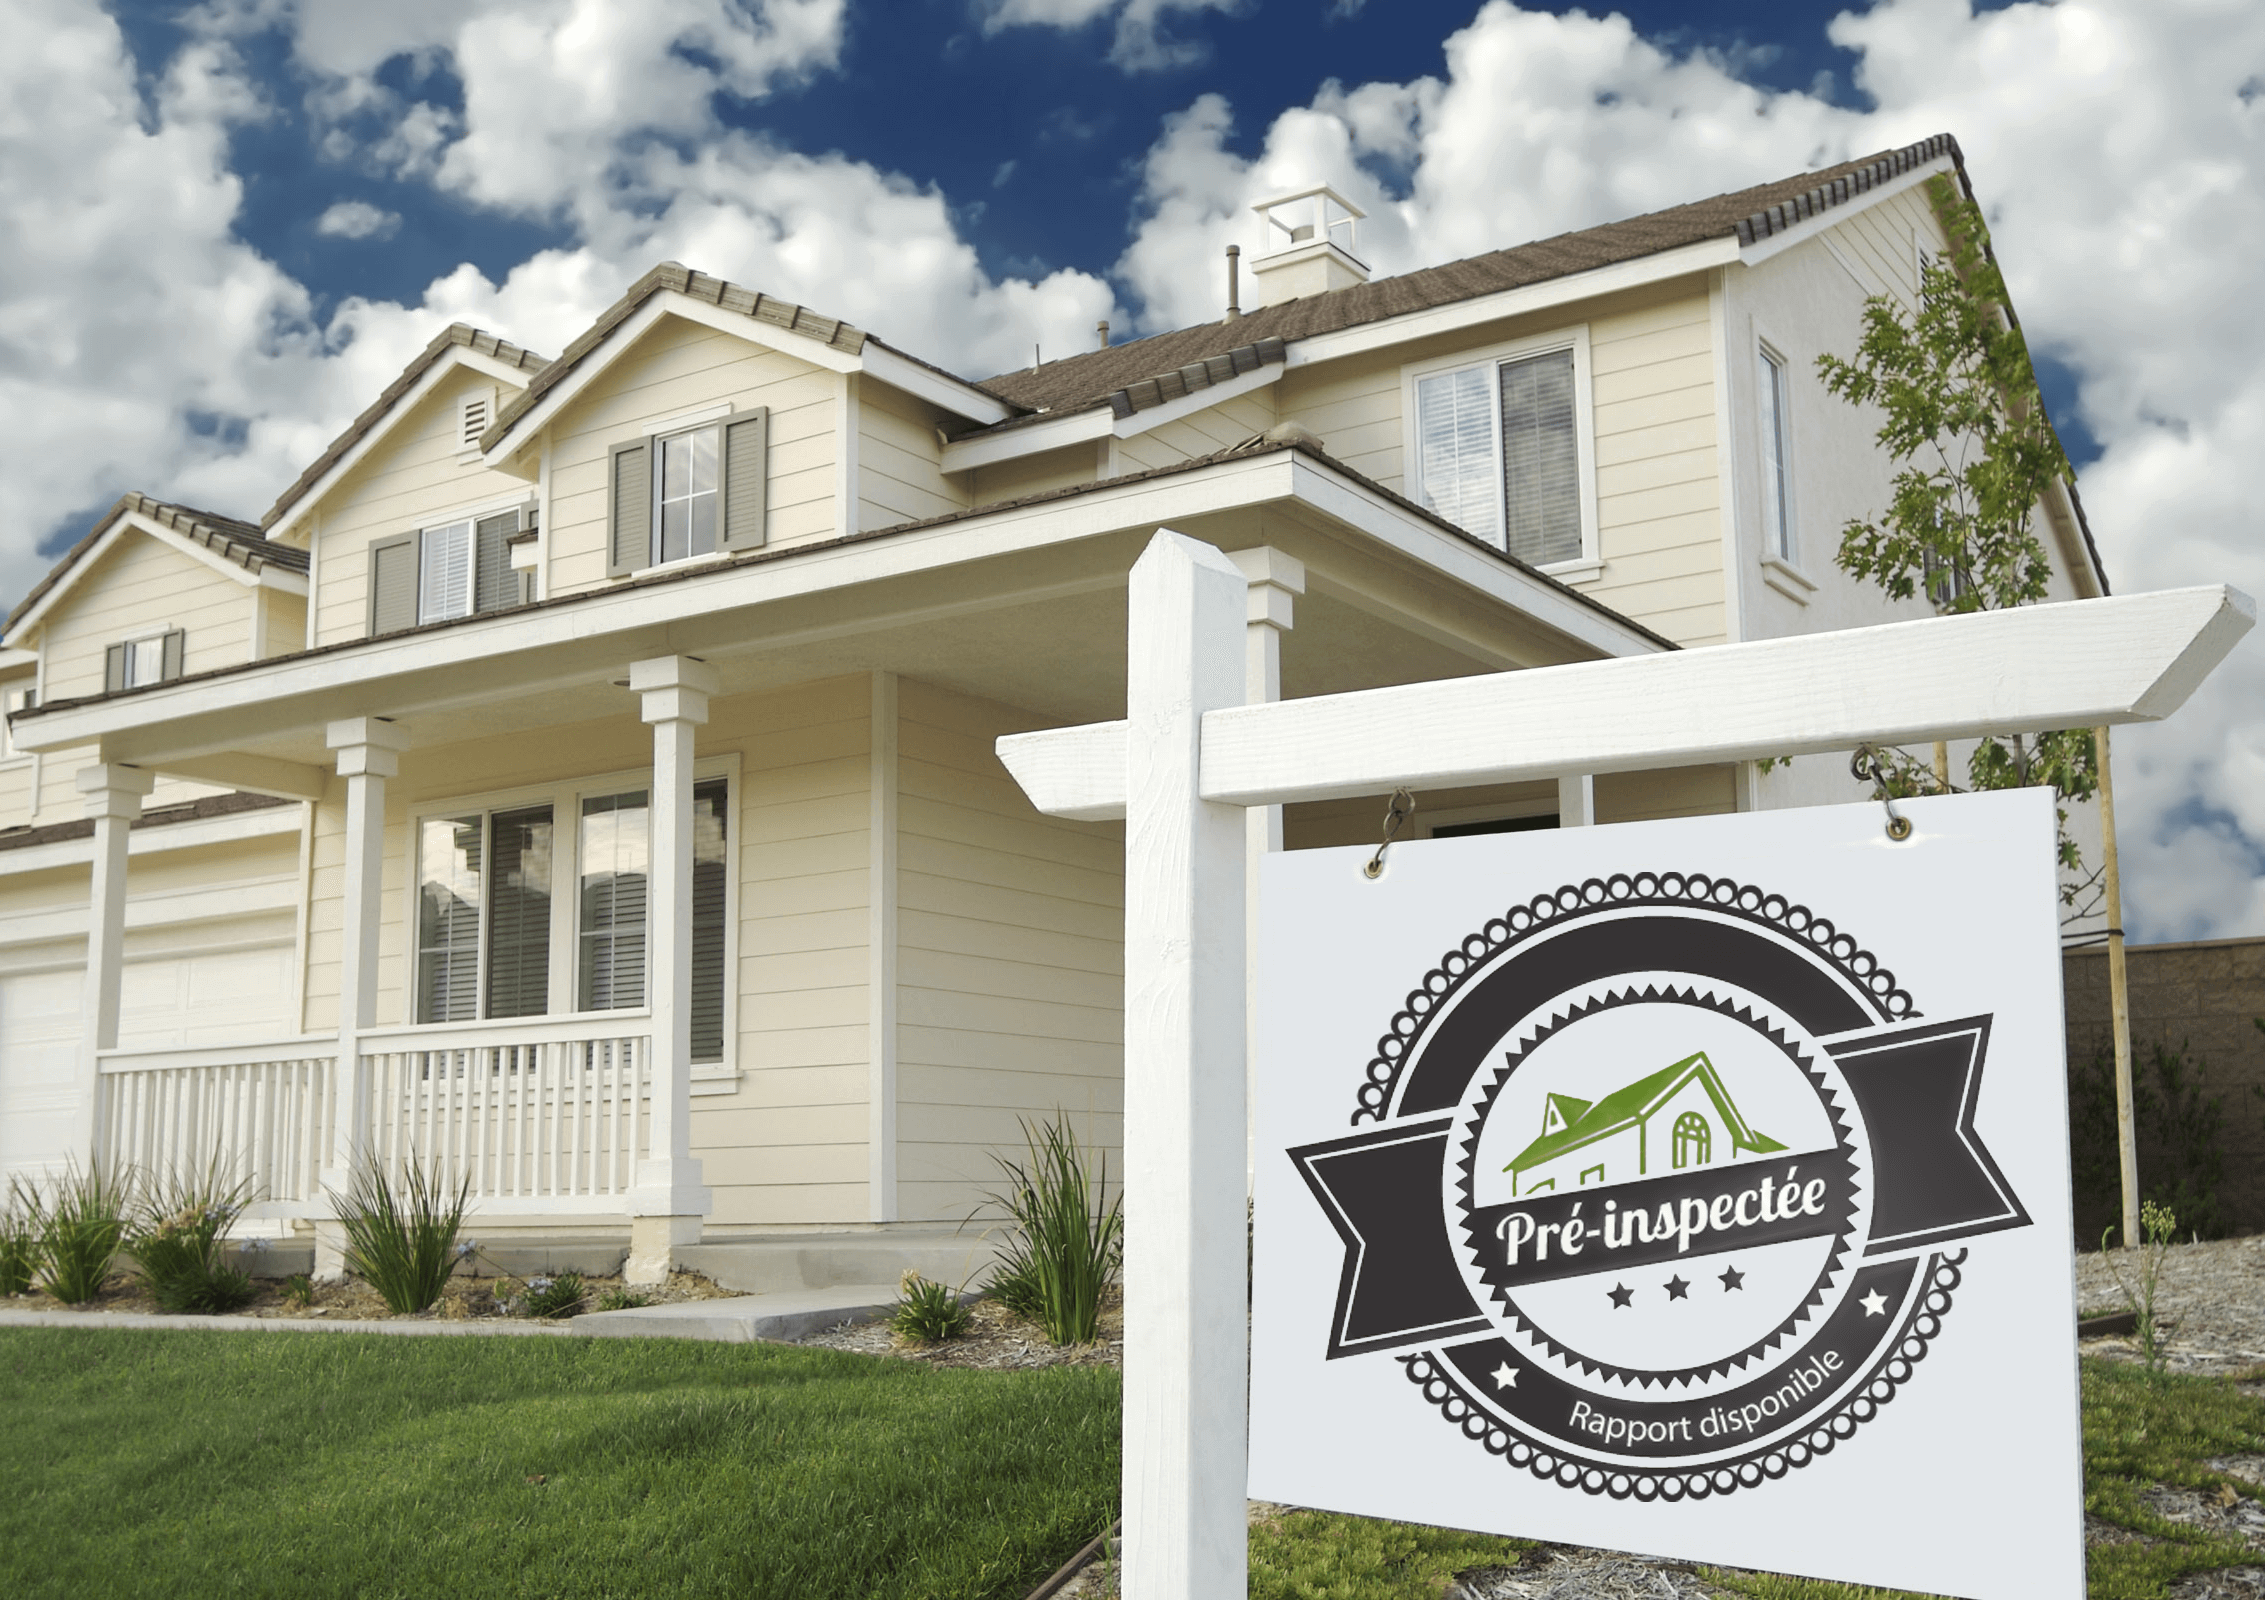 Selling Your Home? Have It Inspected Before And Avoid Future Problems